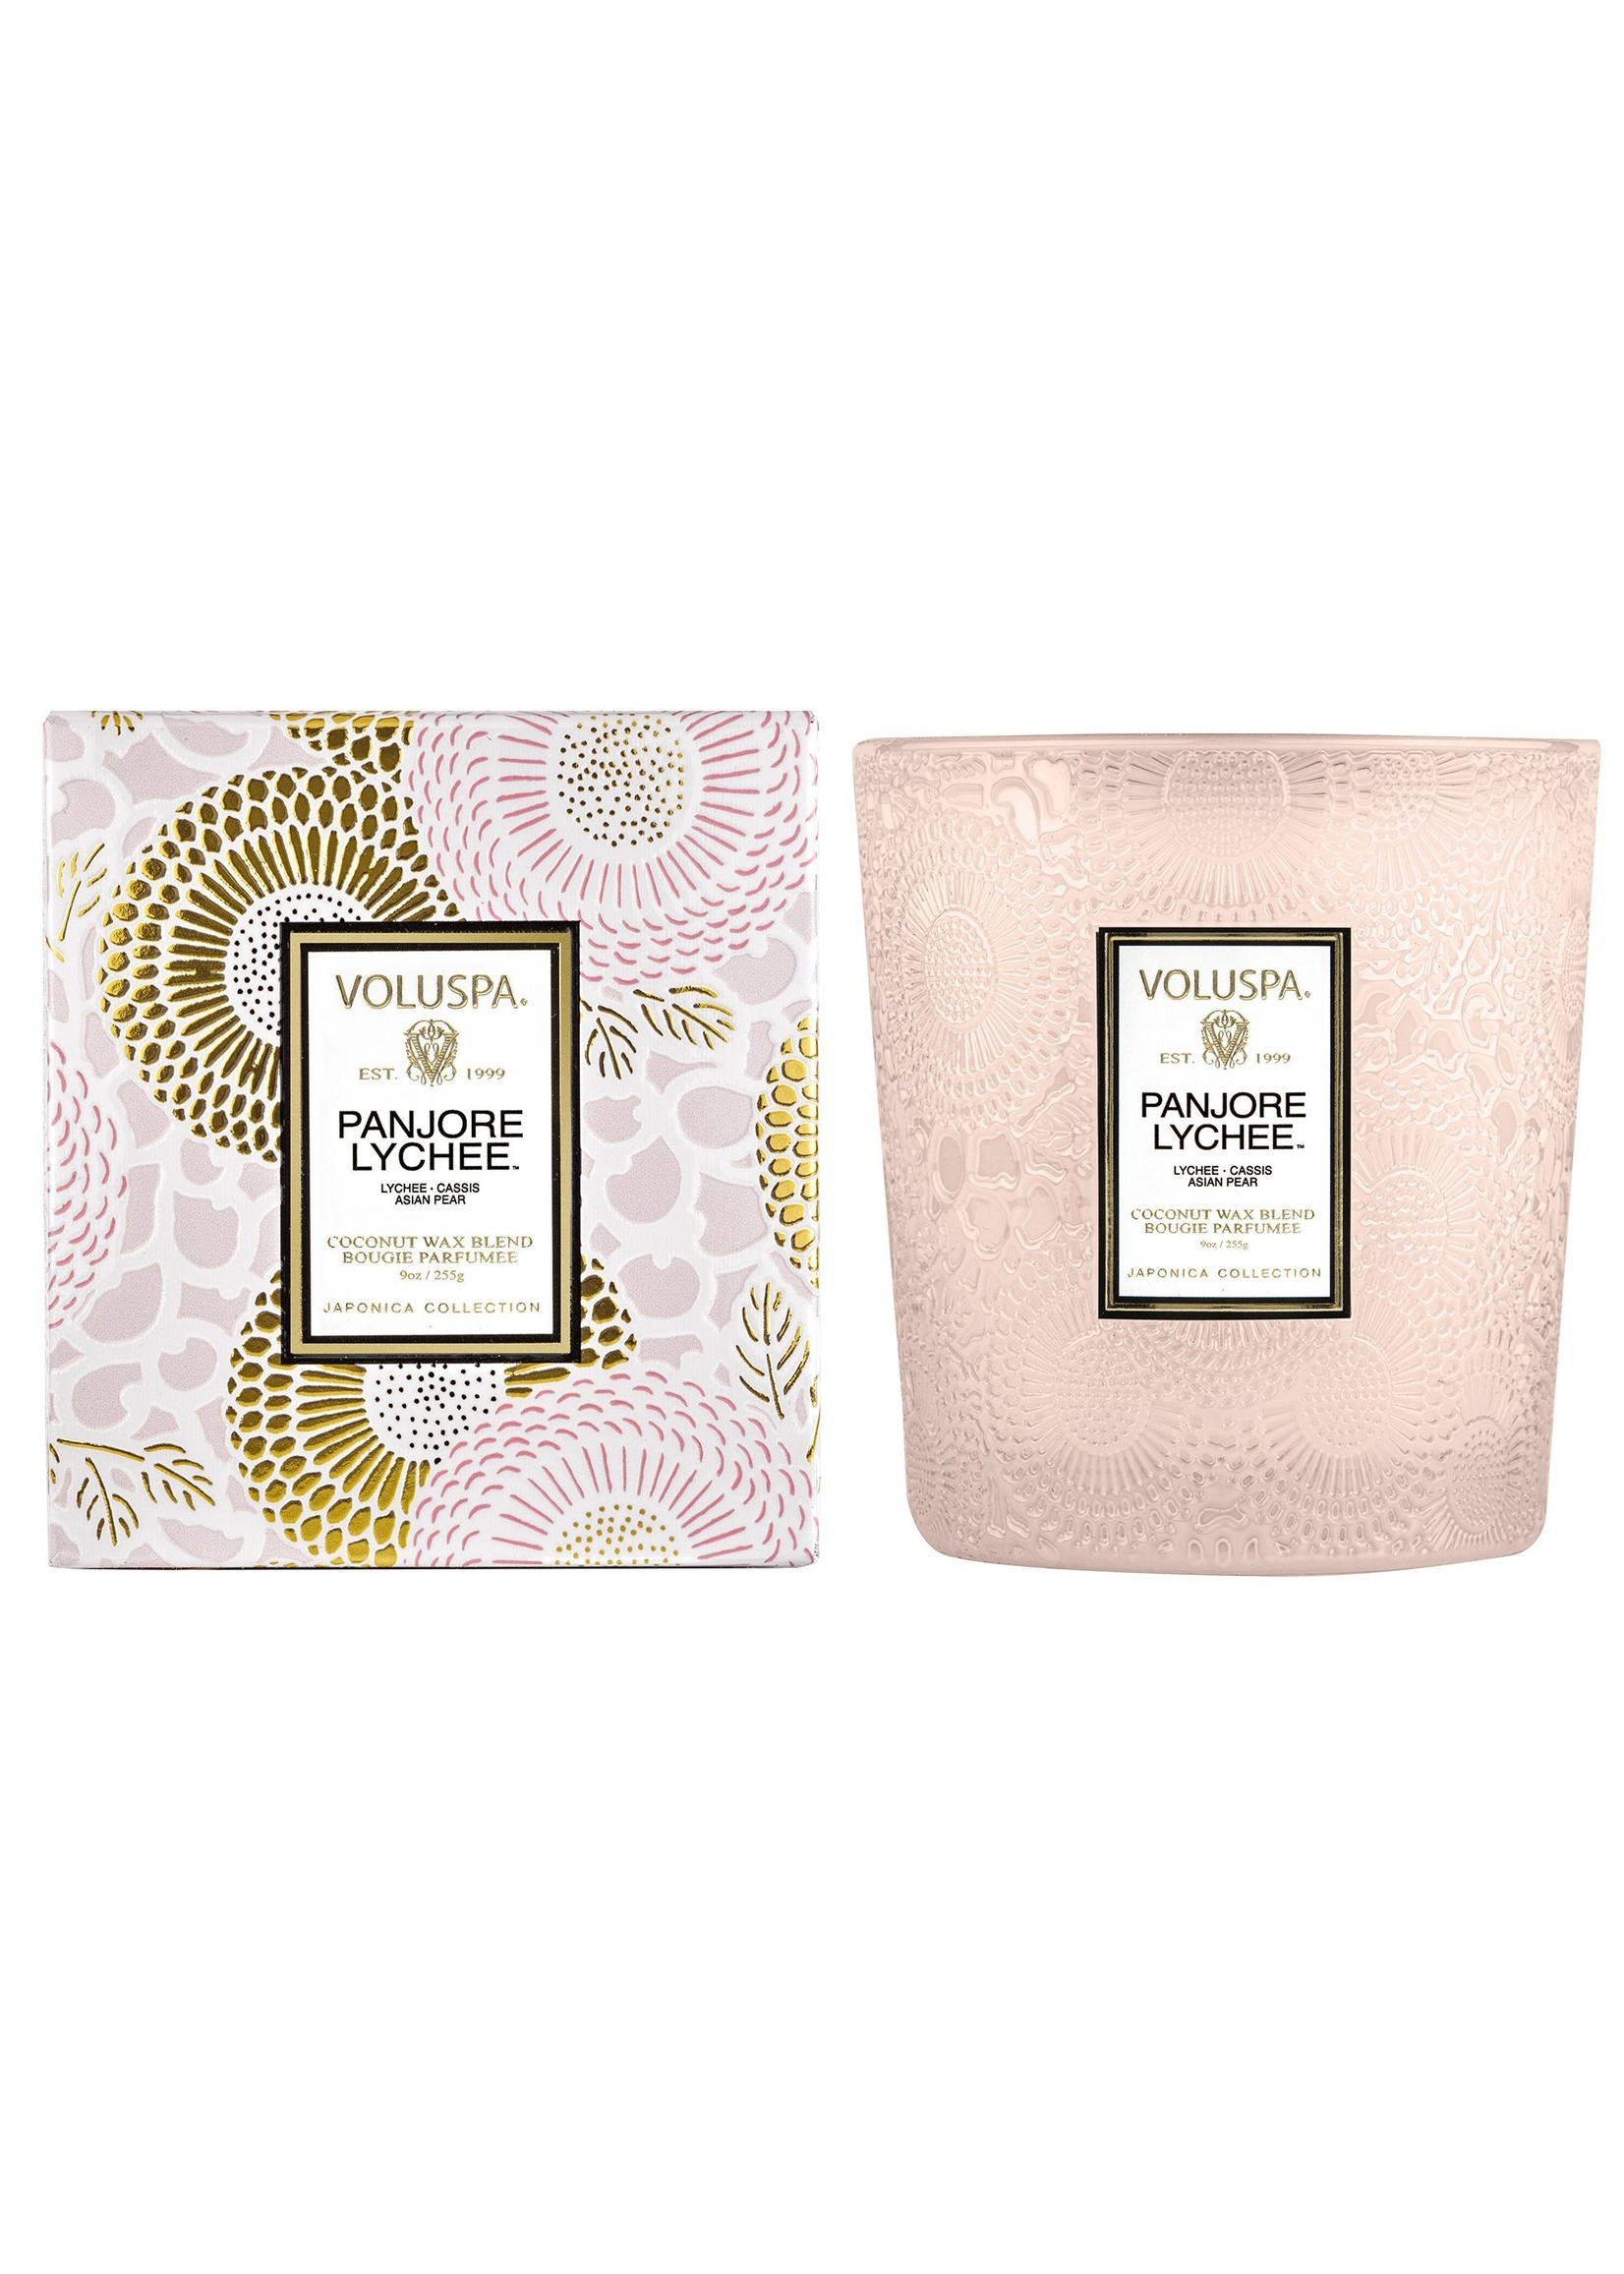 Voluspa Panjore Lychee Classic Candle